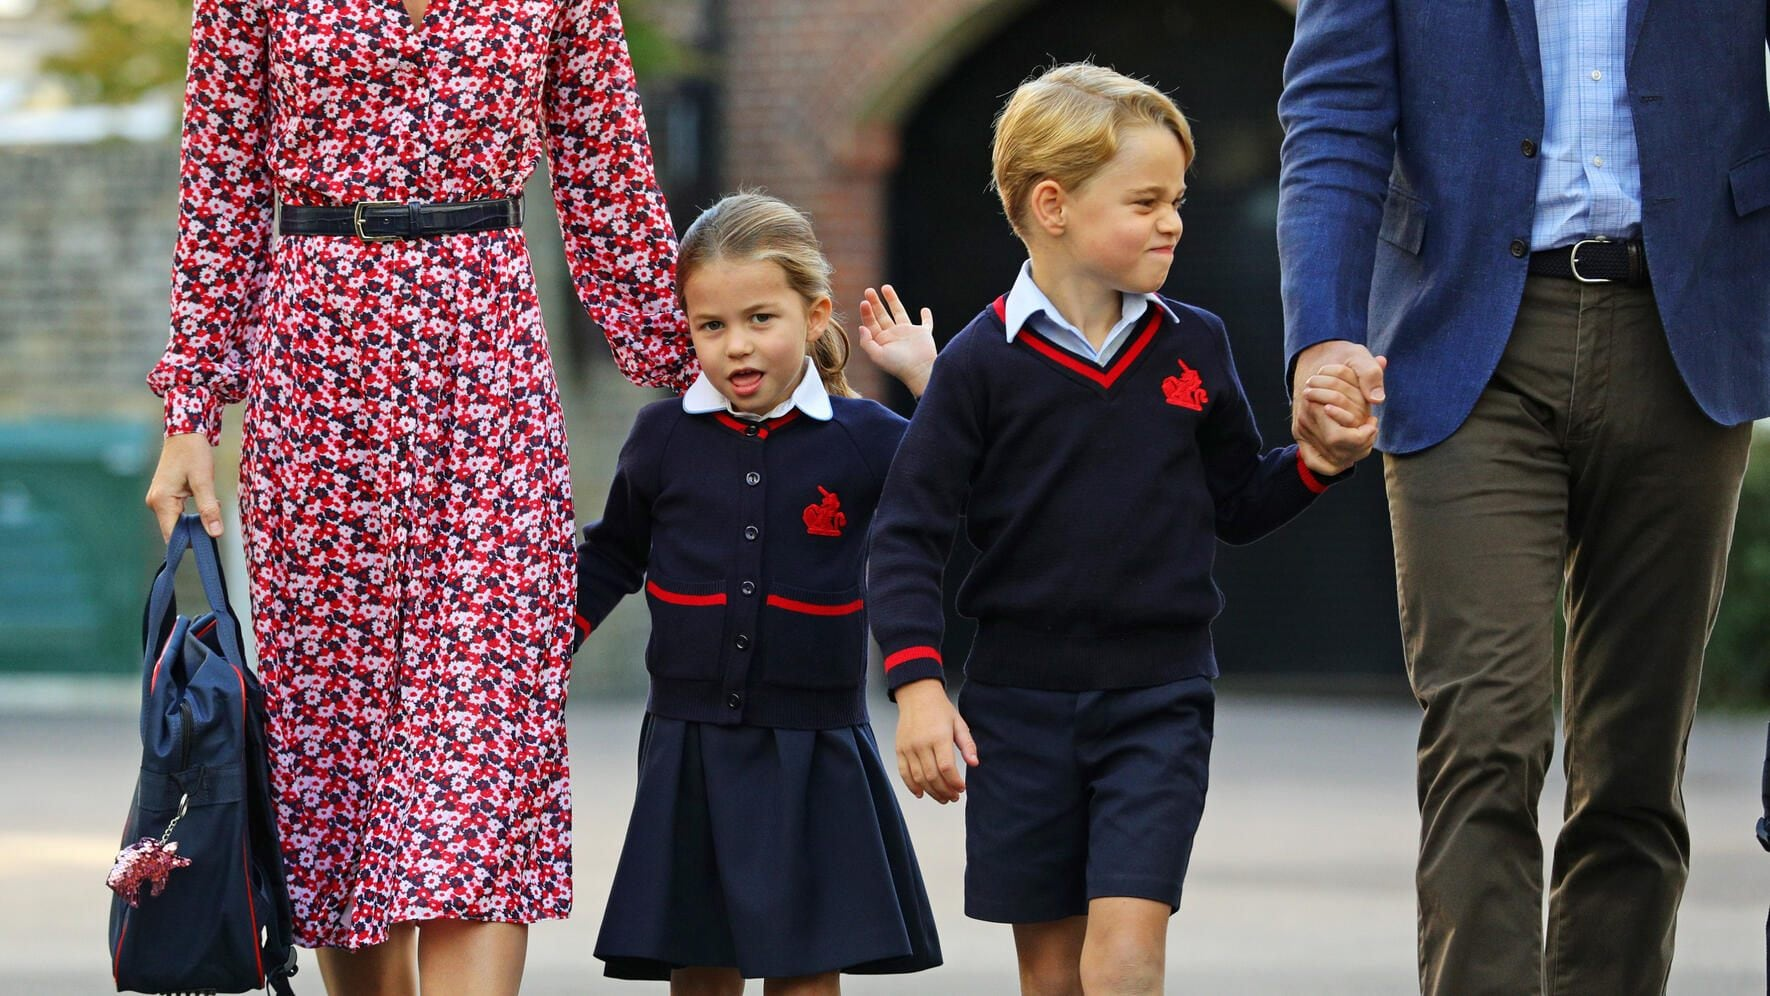 LONDON, UNITED KINGDOM - SEPTEMBER 5: Princess Charlotte, waves as she arrives for her first day at school, with her brother Prince George and her parents the Duke and Duchess of Cambridge, at Thomas's Battersea in London on September 5, 2019 in London, England. (Photo by Aaron Chown - WPA Pool/Getty Images)